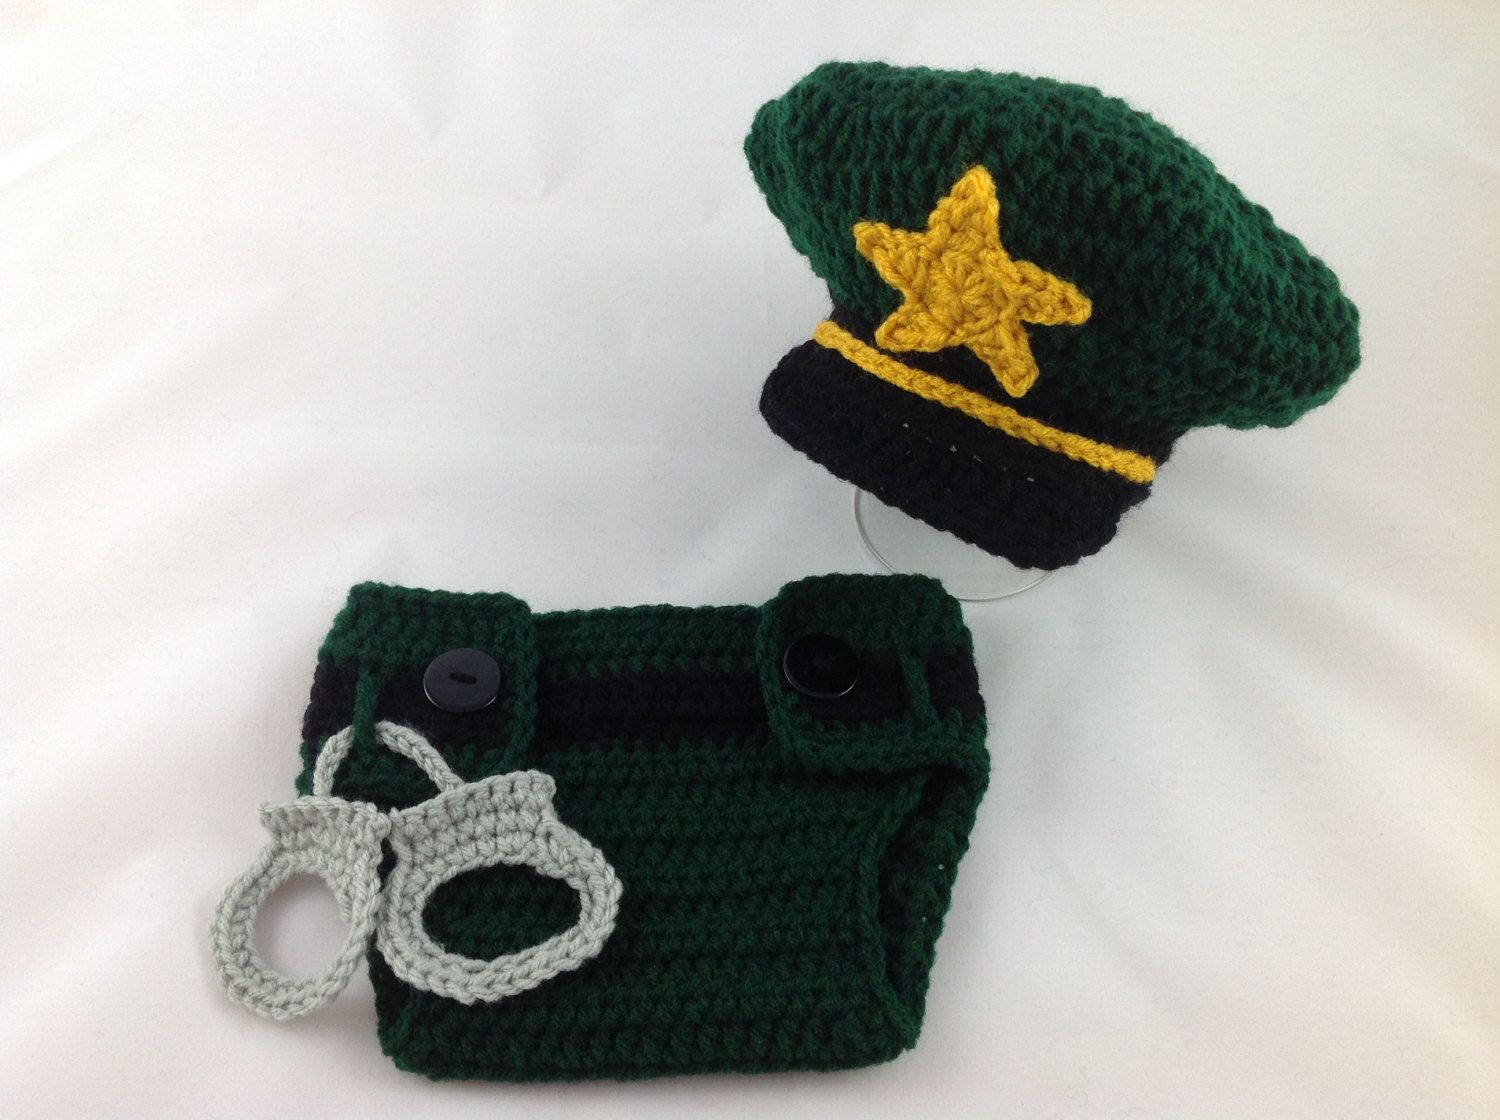 70b0e51ec52 Baby Sheriff Outfit - Crochet Sheriff Costume - Baby Police Uniform -  Newborn Police Outfit - Infant Police Outfit - Baby Police Gift by ...